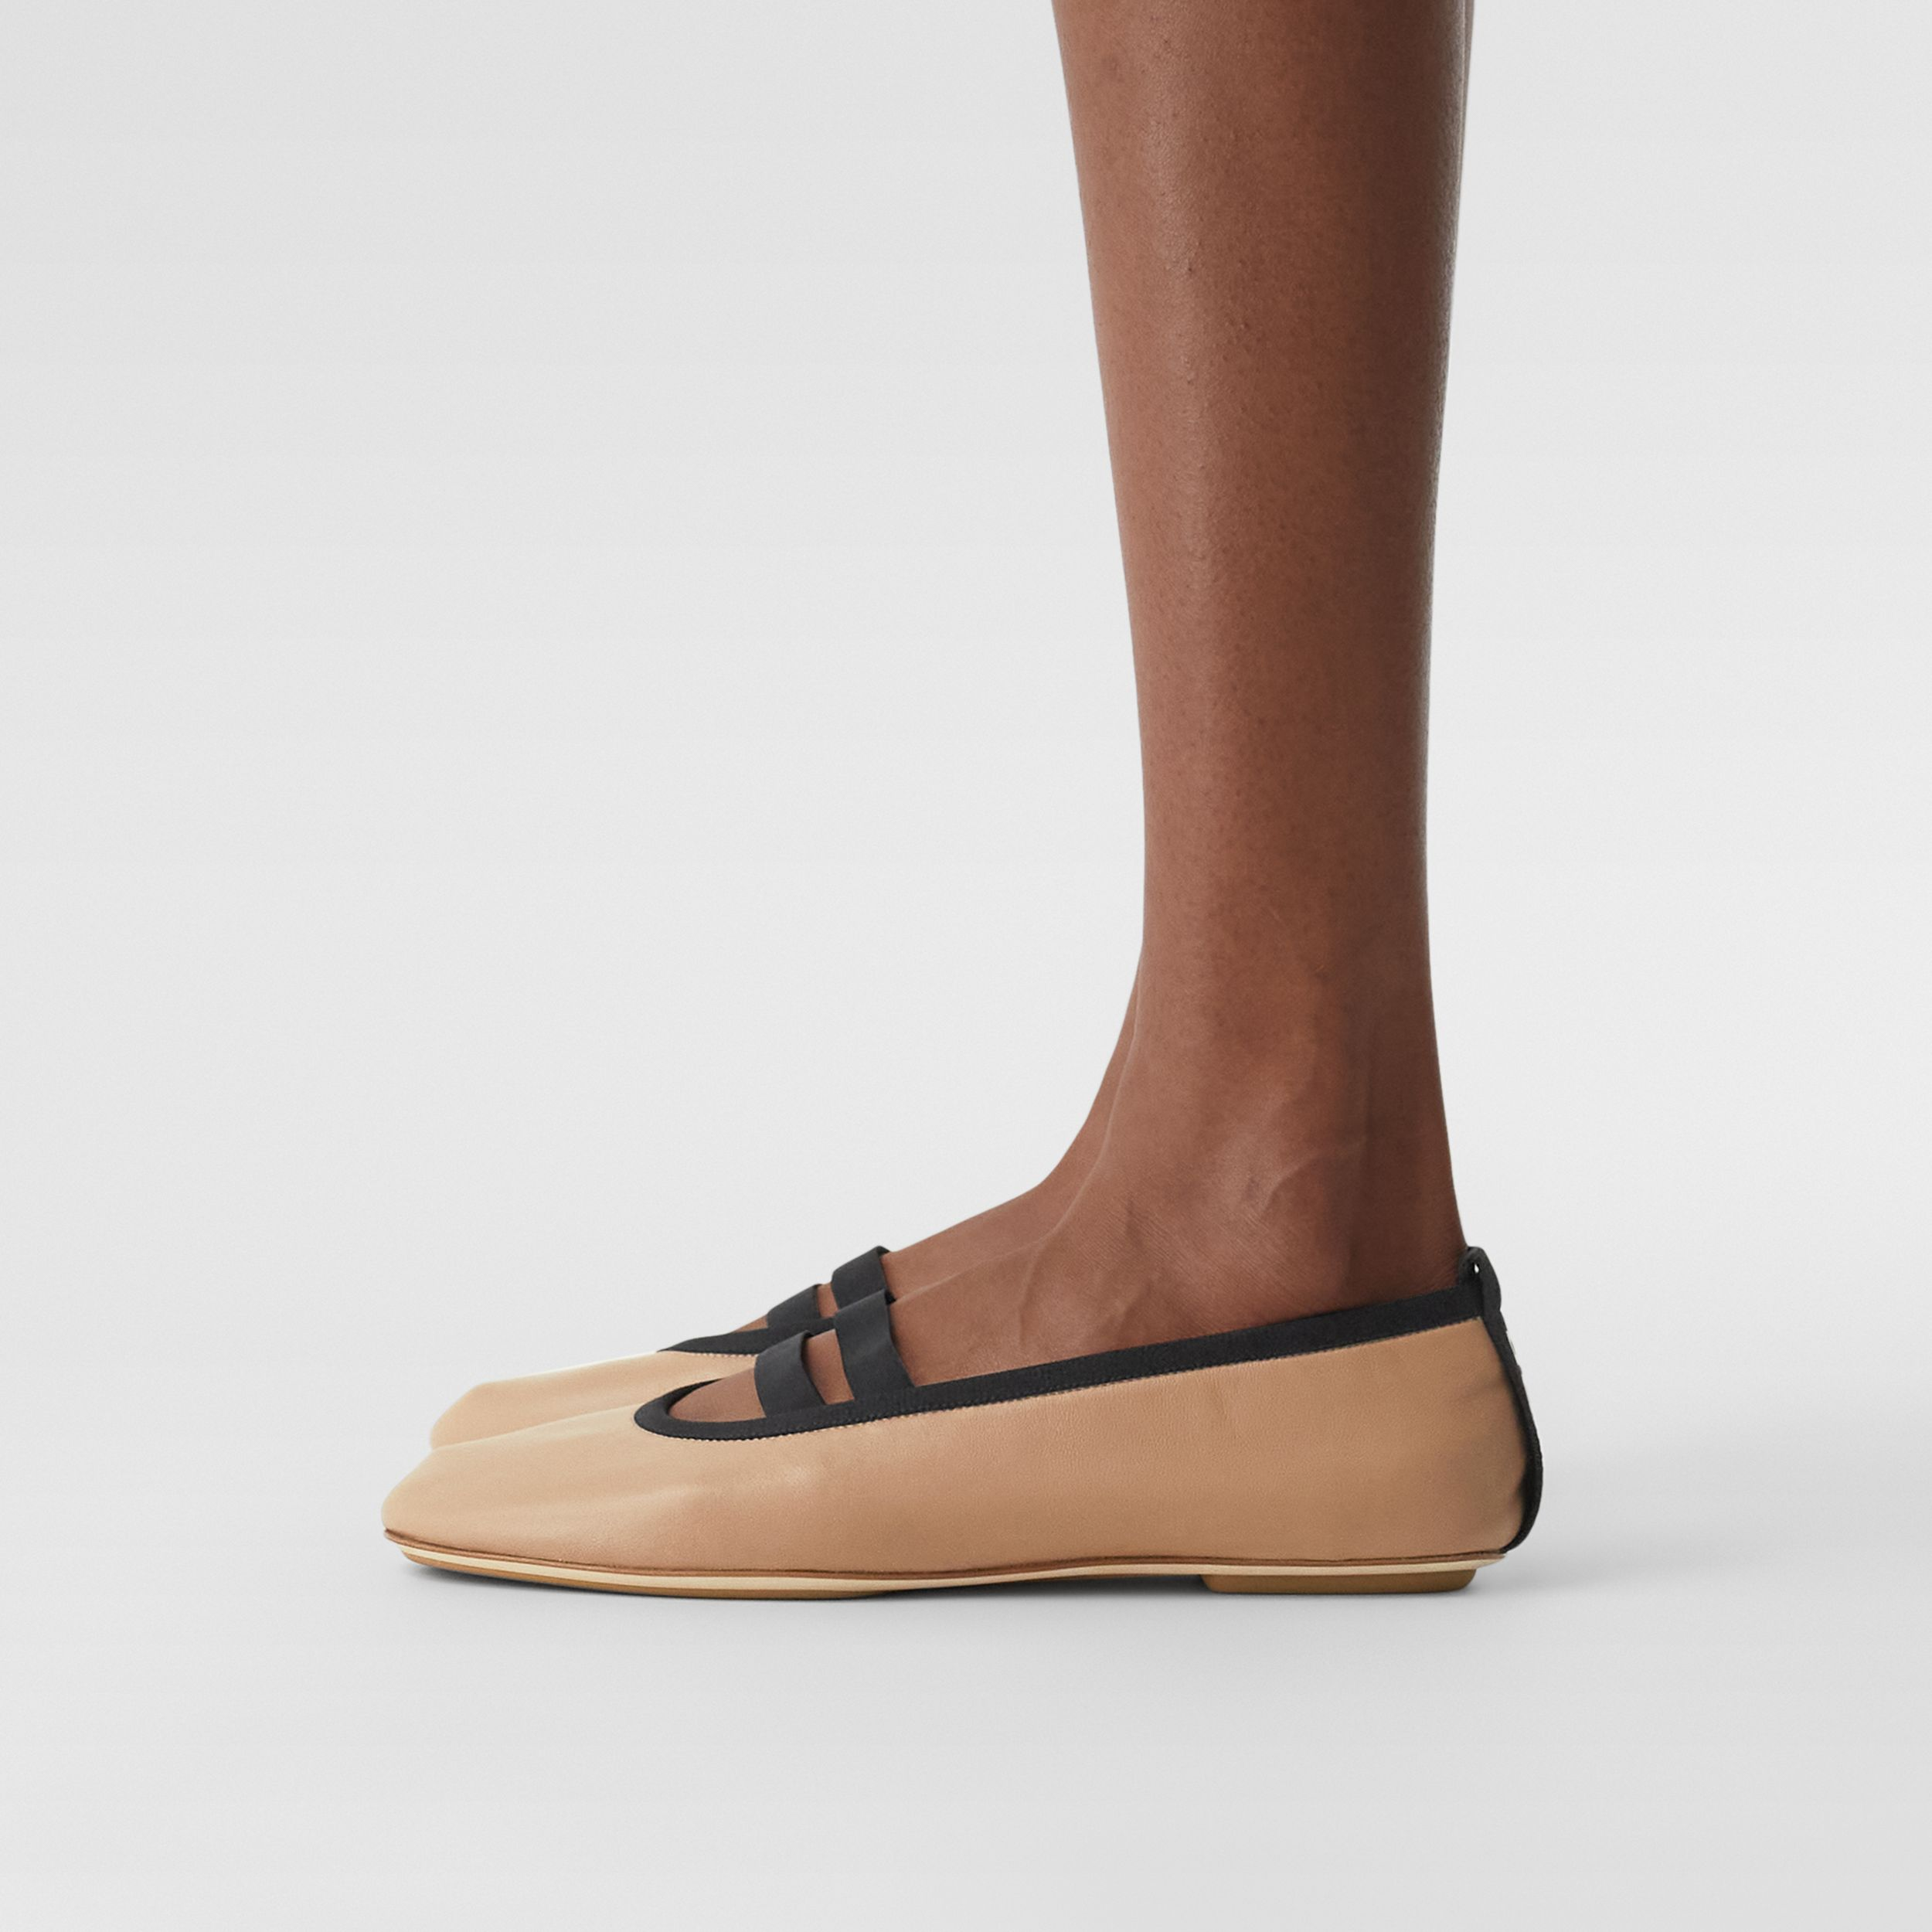 Logo Detail Lambskin Ballerinas in Camel - Women | Burberry United States - 3